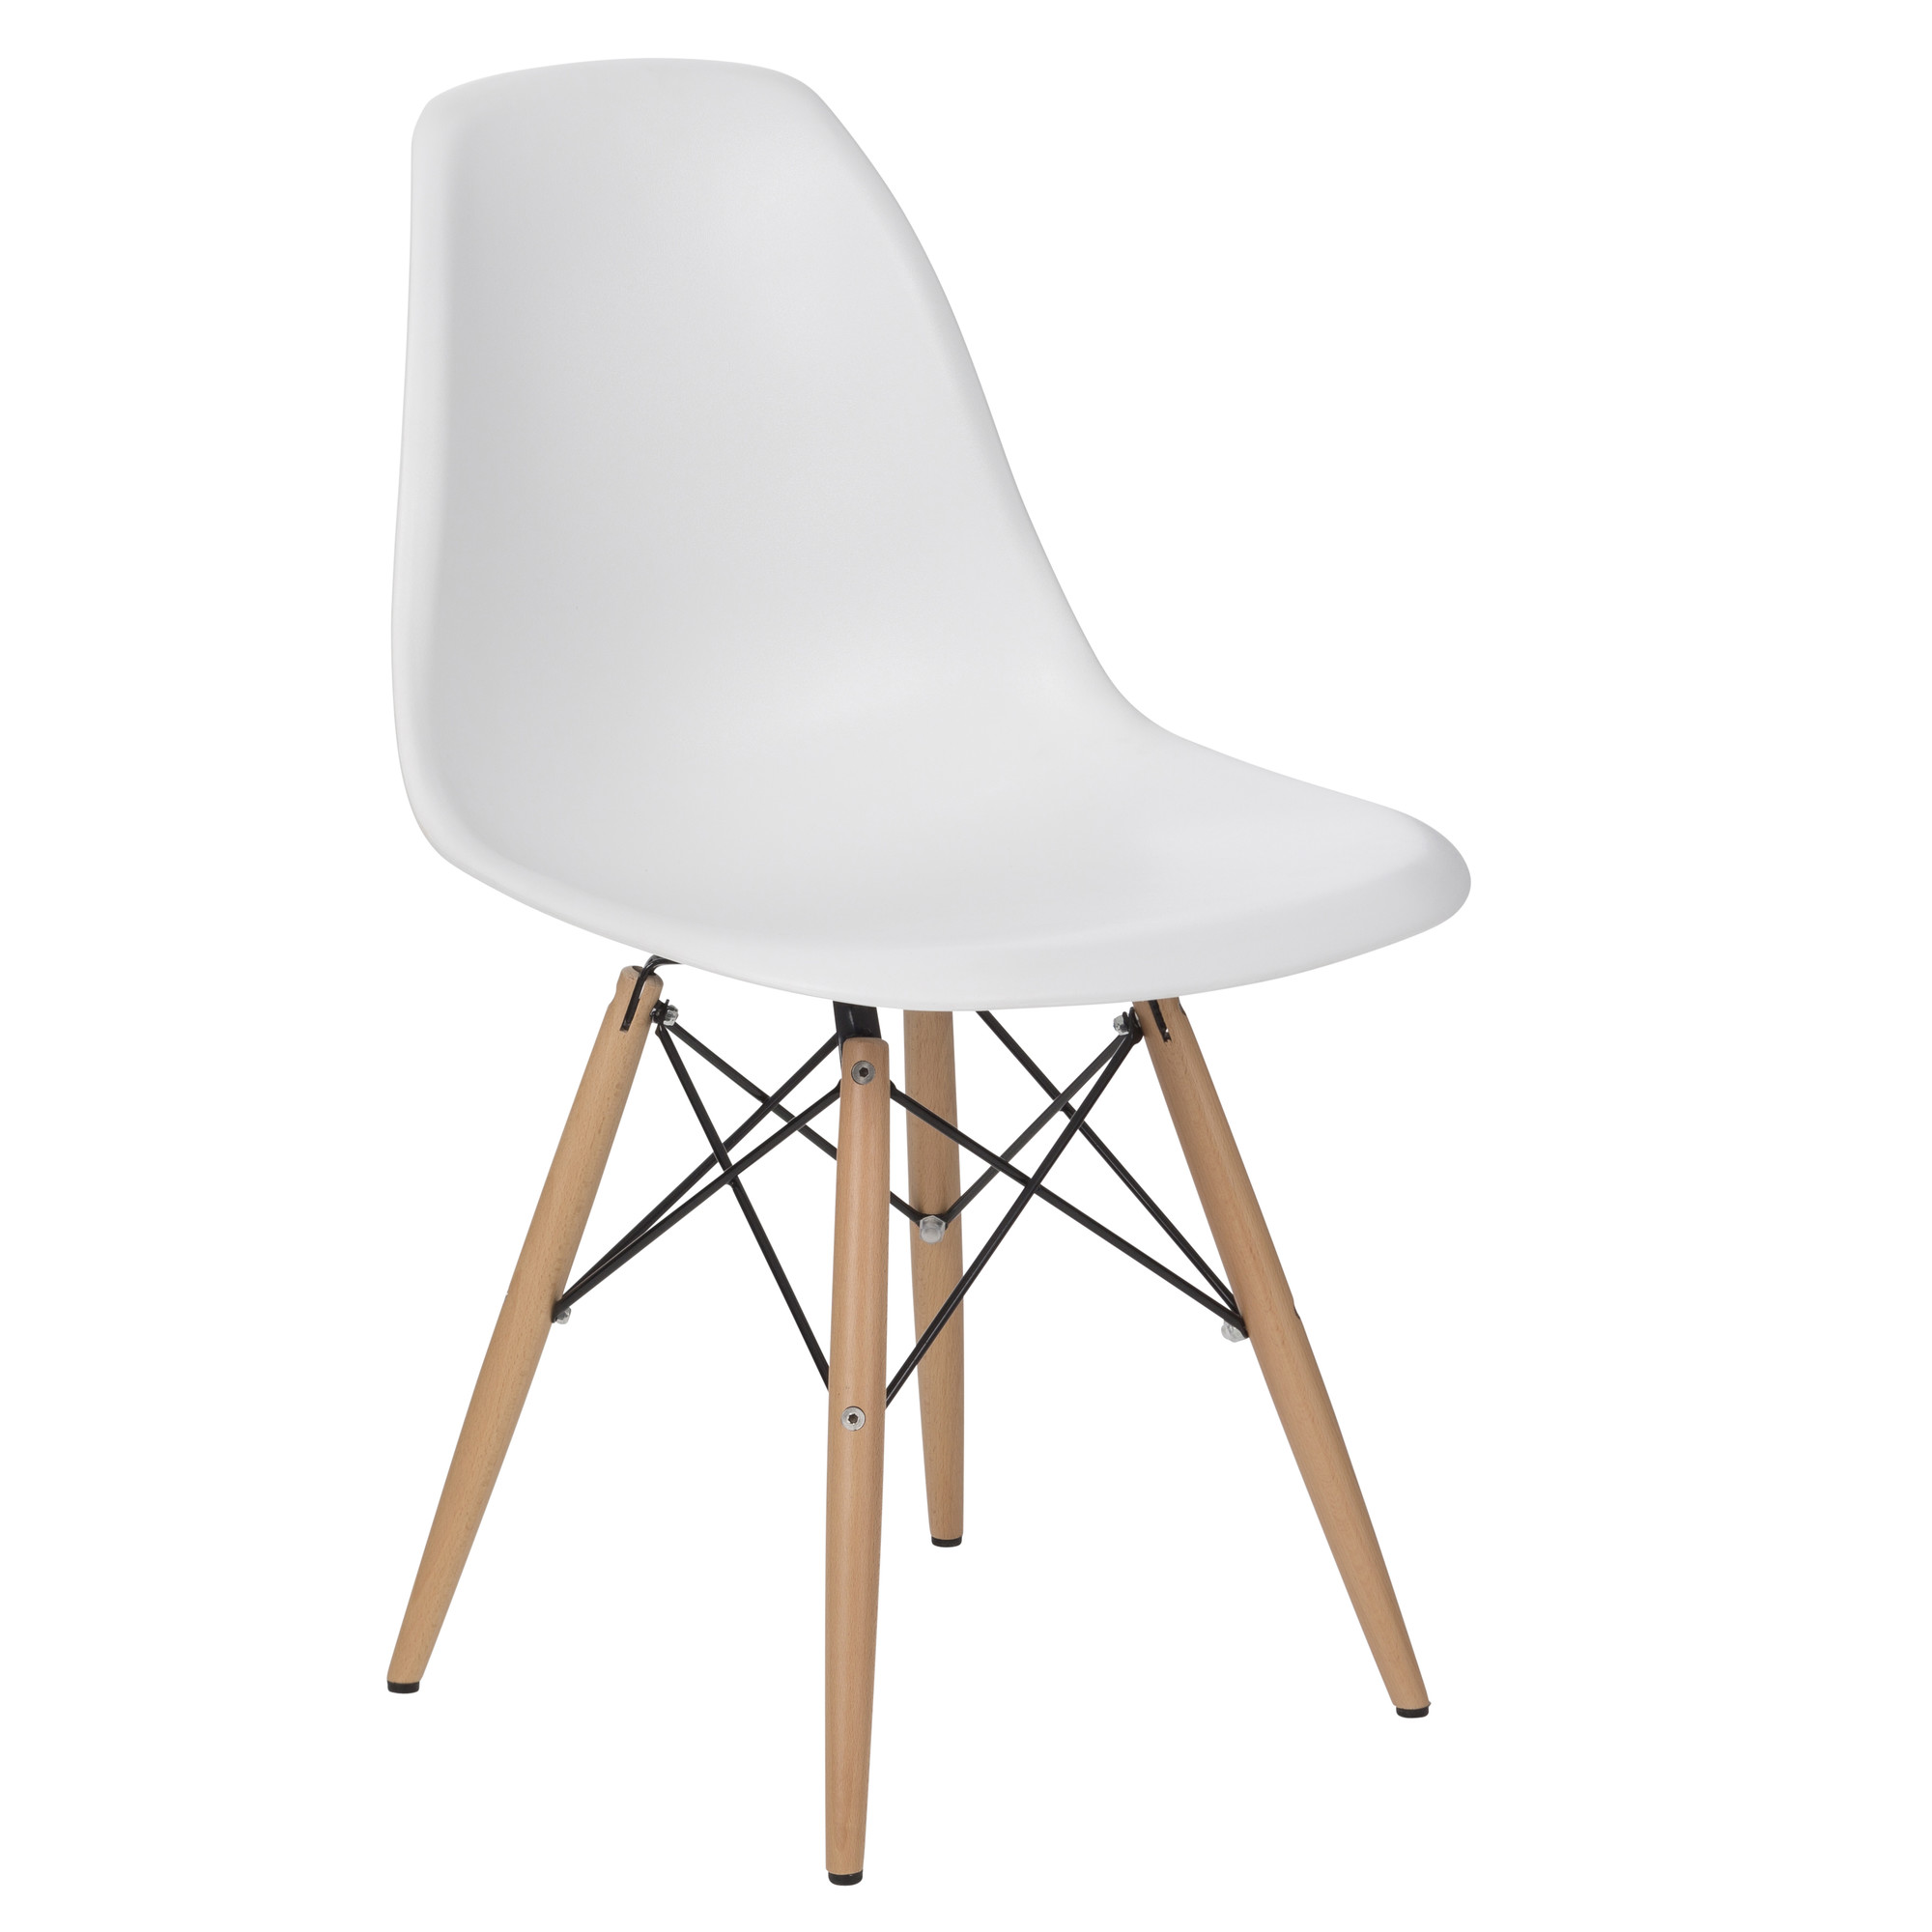 Bon SKU #TPWT1732 Eames Replica DSW Dining Side Chair Is Also Sometimes Listed  Under The Following Manufacturer Numbers: GEDSWBLI, GEDSWBLU, GEDSWWHI